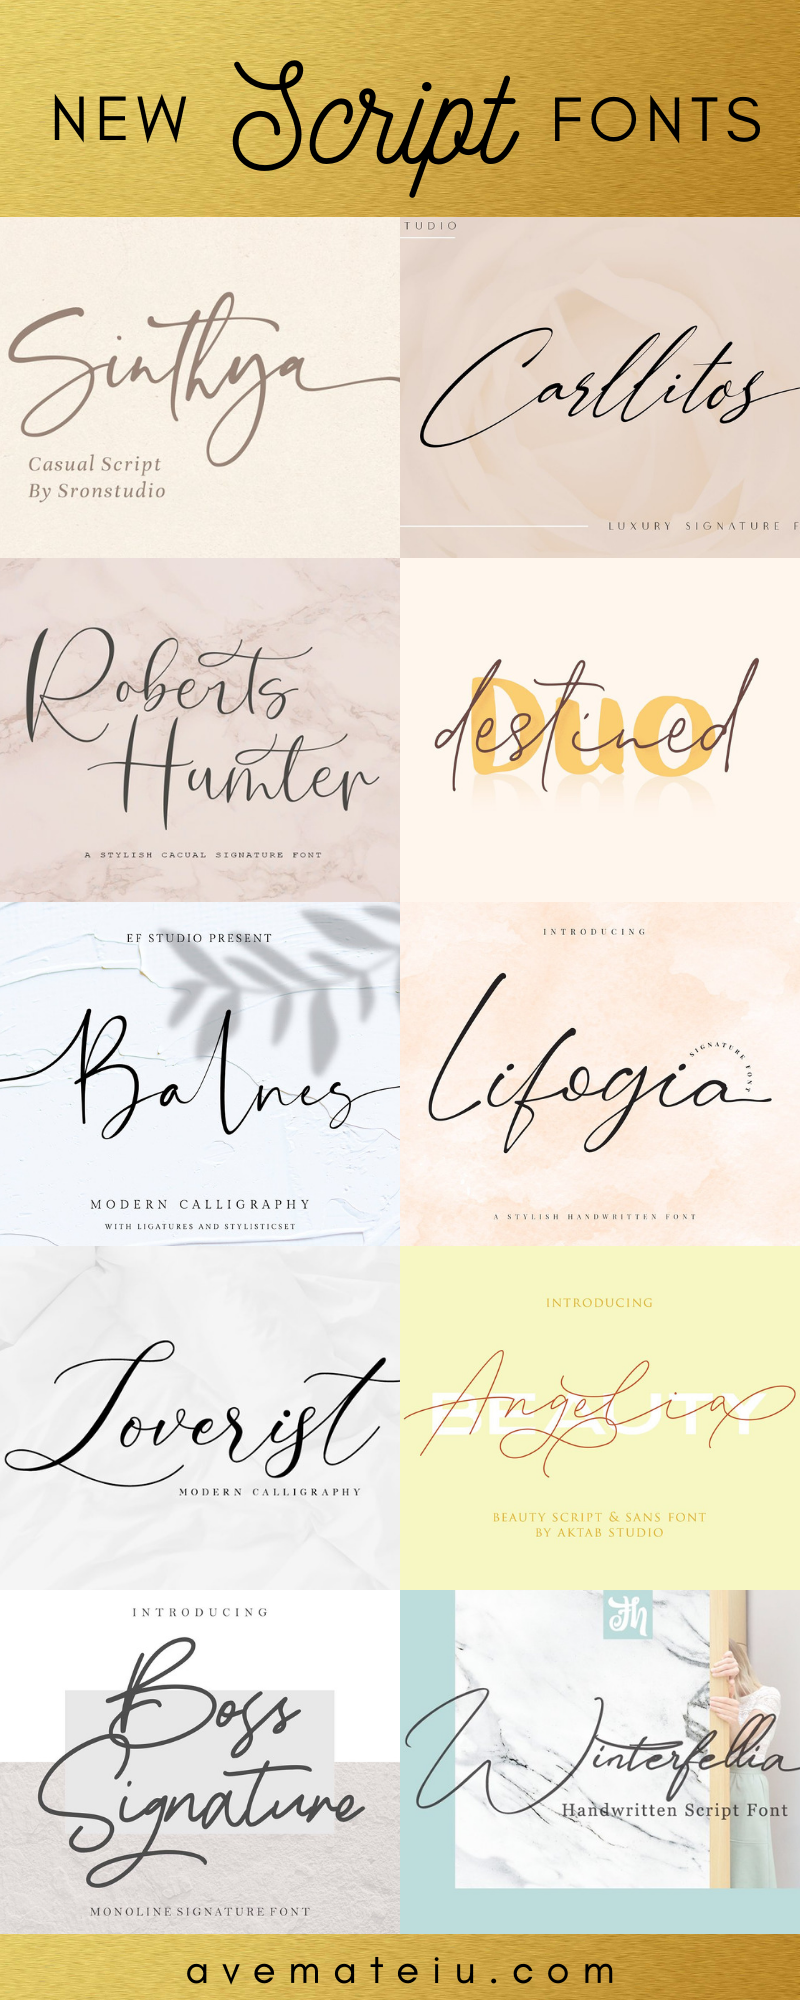 Check out my list with 10 New Hot Script Fonts for branding your projects in 2019. It is never too late to add charm to your blog! Art, Fonts and Calligraphy, Typography, Handwritten Fonts, Script Fonts, Modern Fonts, Cursive Fonts, Design Fonts, Calligraphy Fonts, Simple Fonts, Elegant Fonts, Professional Fonts, Beautiful Fonts